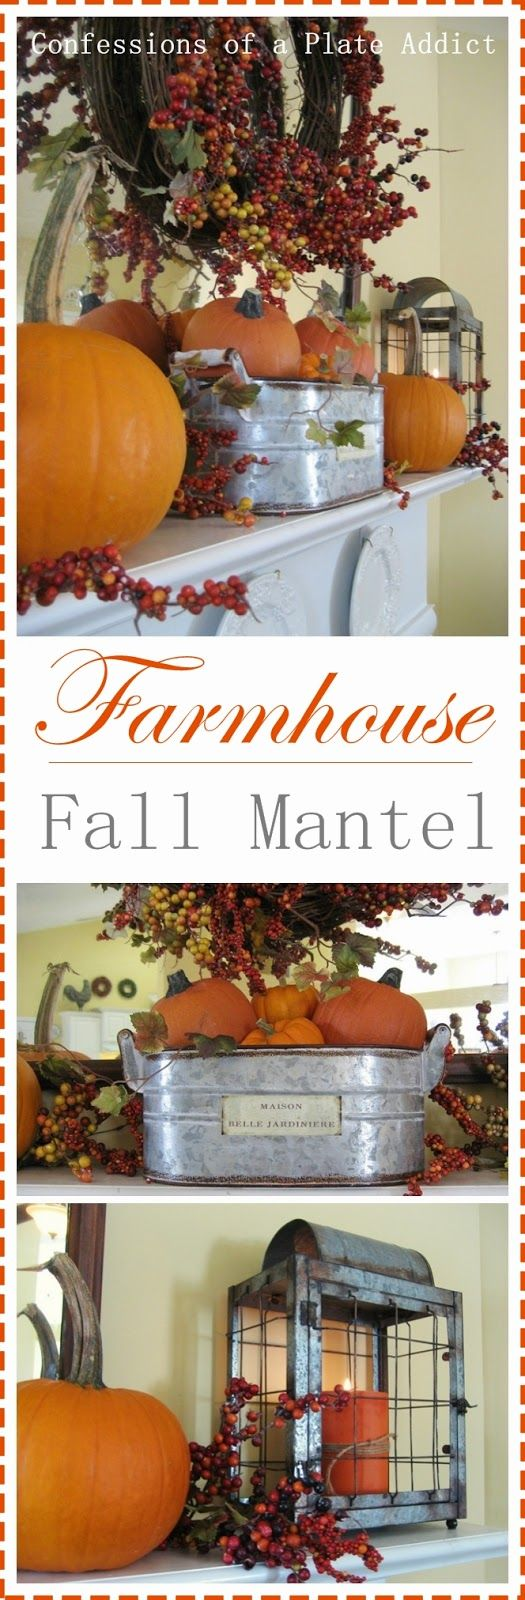 Top 100 mantel decorating ideas for thanksgiving image - 25 Best Ideas About Fall Mantle Decor On Pinterest Fall Fireplace Decor Fall Living Room And Fall Room Decor